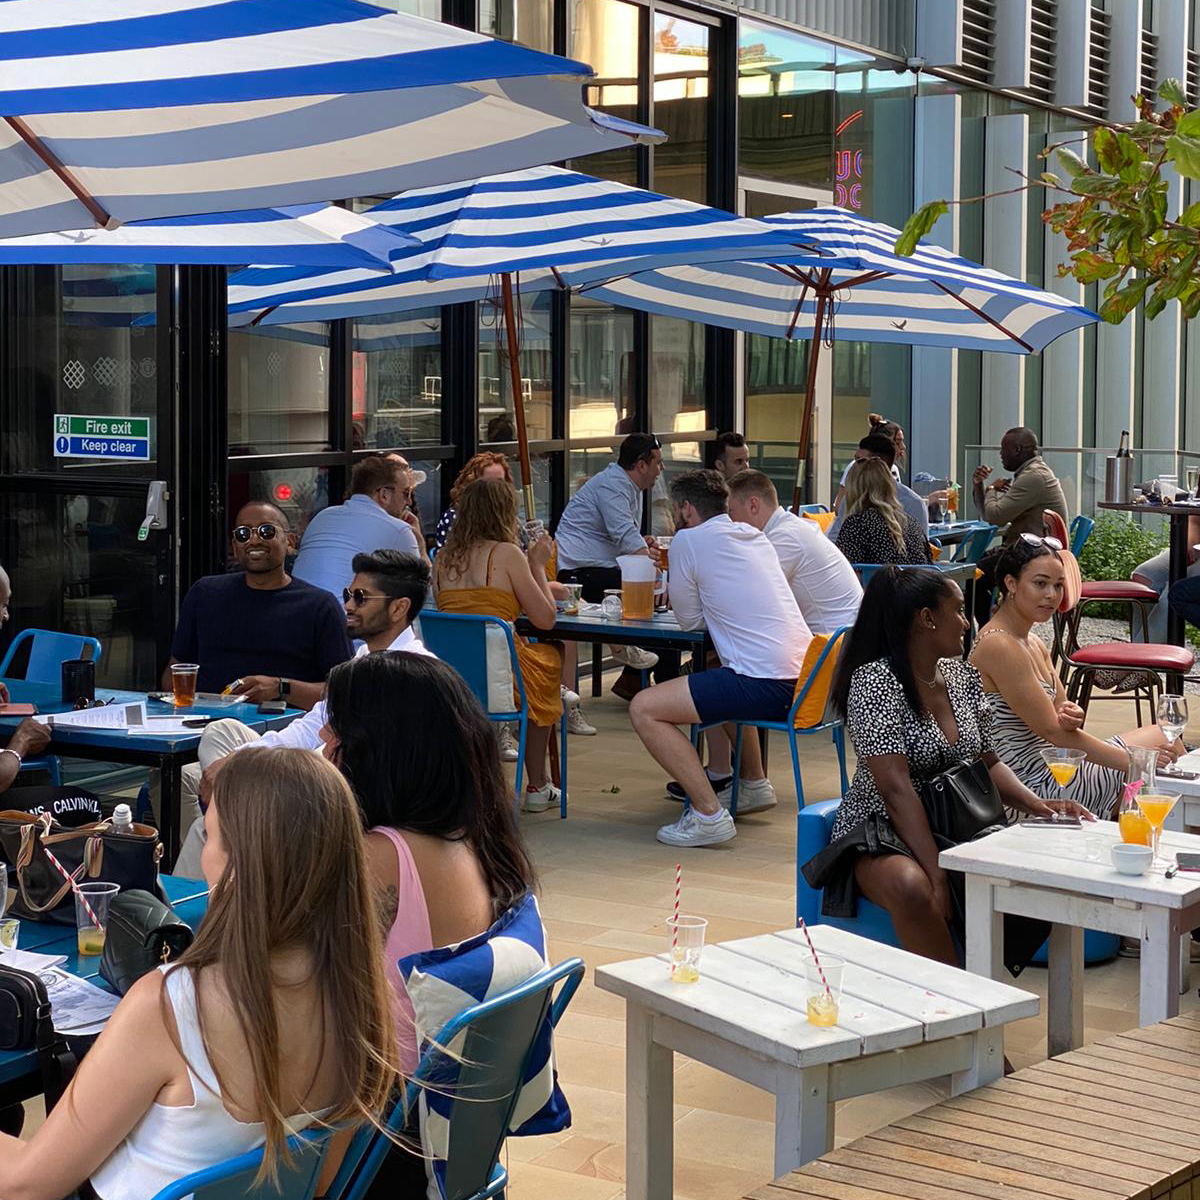 HUCKSTER London Sun Terrace Paddington Beer Garden Rooftop Roof Top Bar Outdoor Drinking